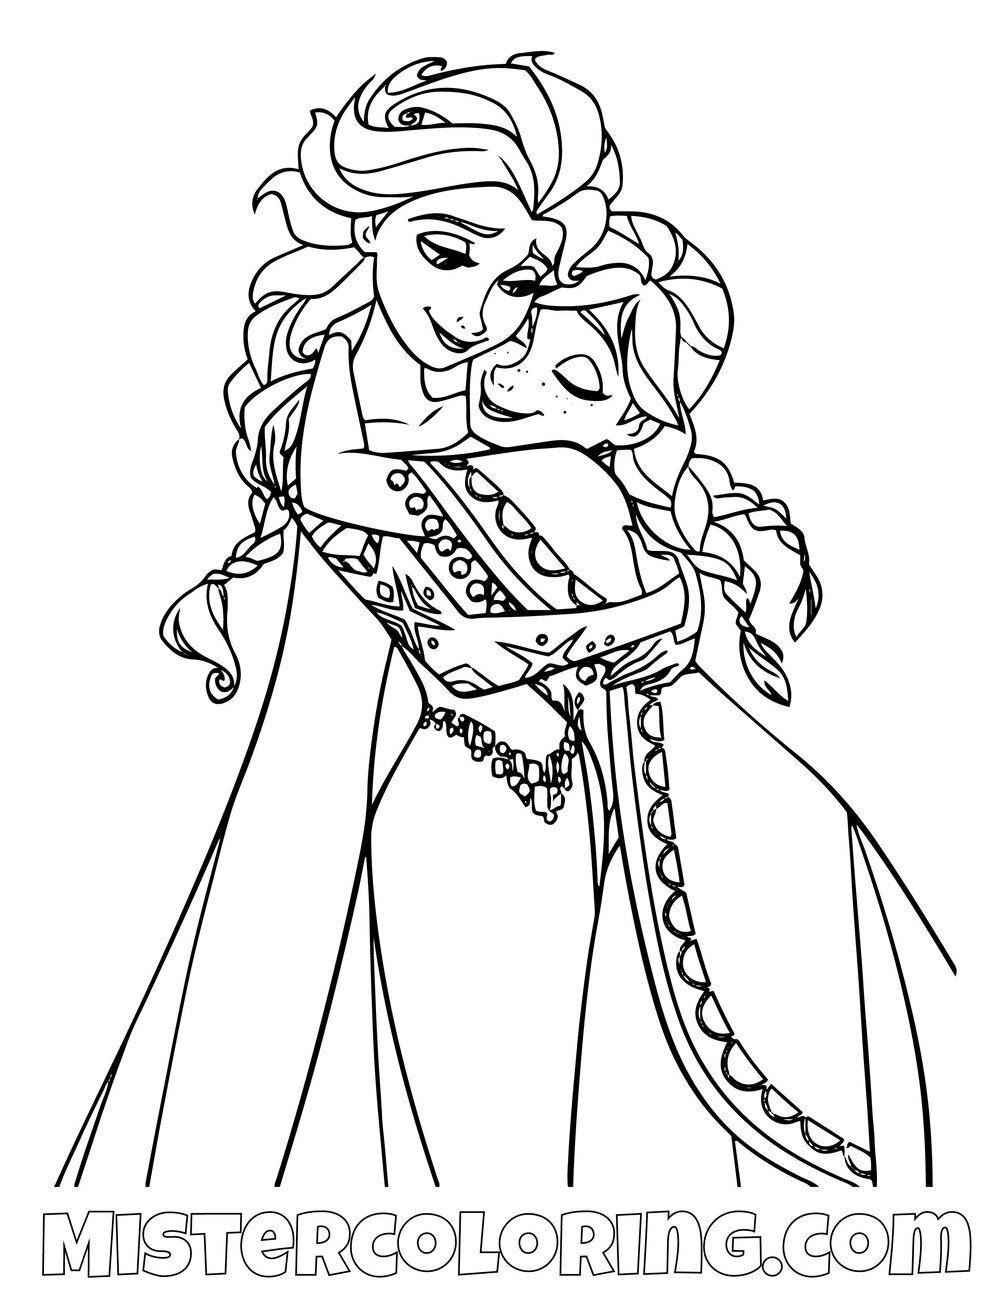 Frozen 2 Coloring Pages For Kids image by Mister Cijo